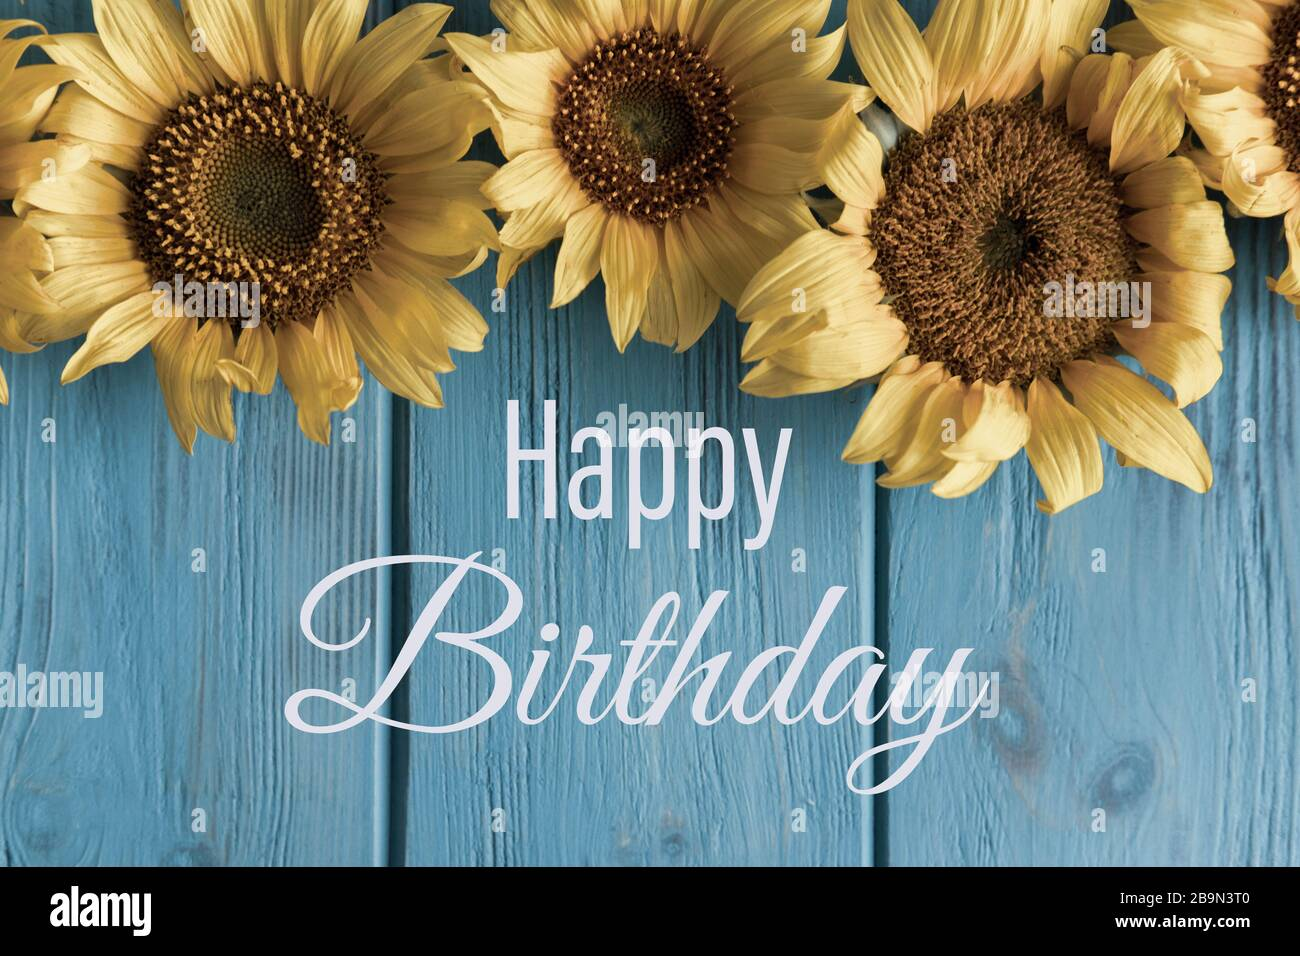 Happy Birthday Birthday Greeting Card With Sunflower Flowers And A Greeting Lettering Vintage Card Template For E Mail Newsletter Stock Photo Alamy